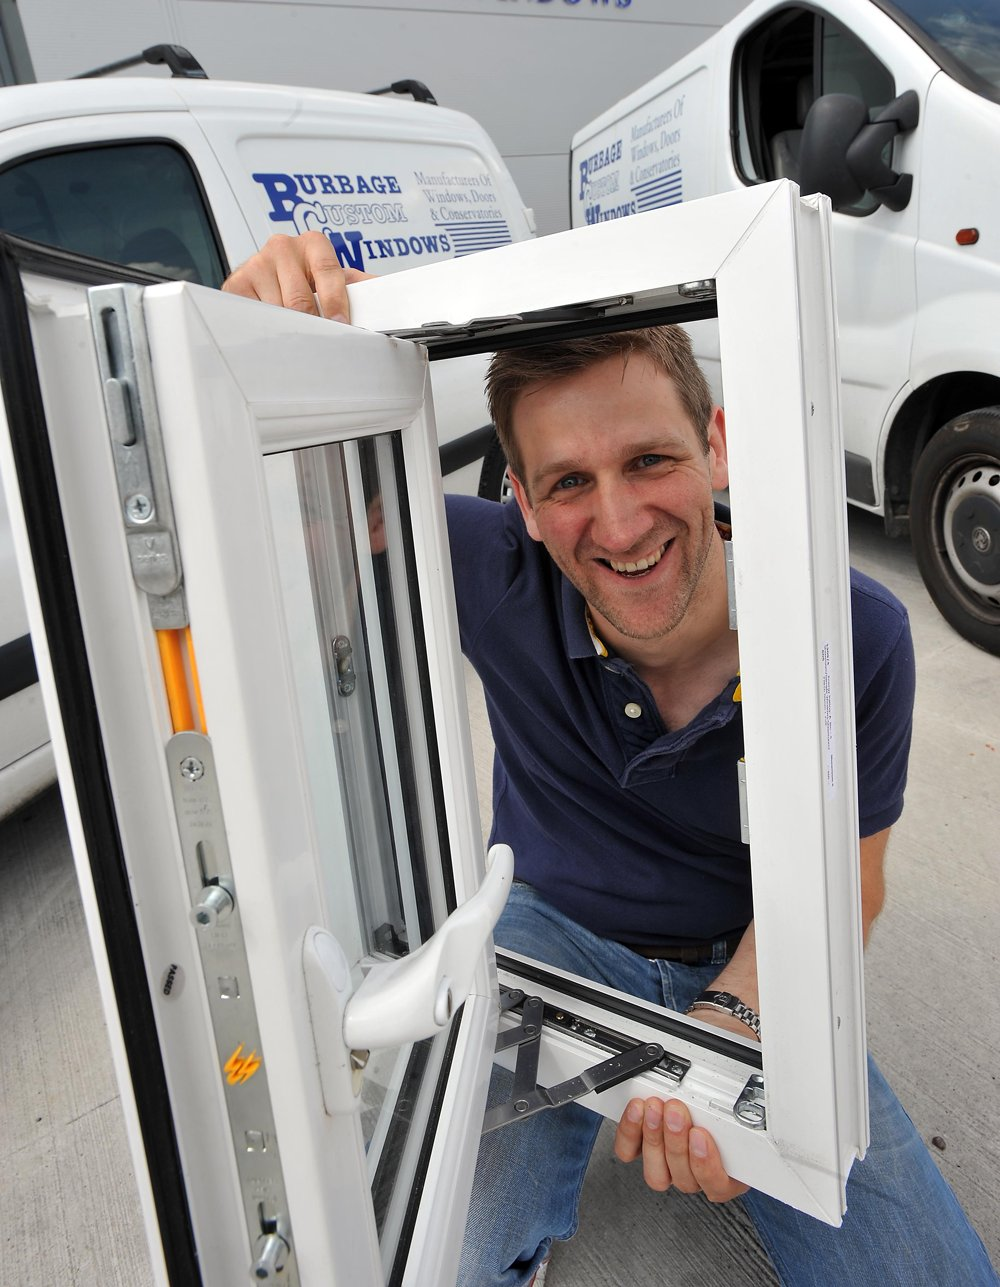 Leicestershire window business doubles workforce due to innovation